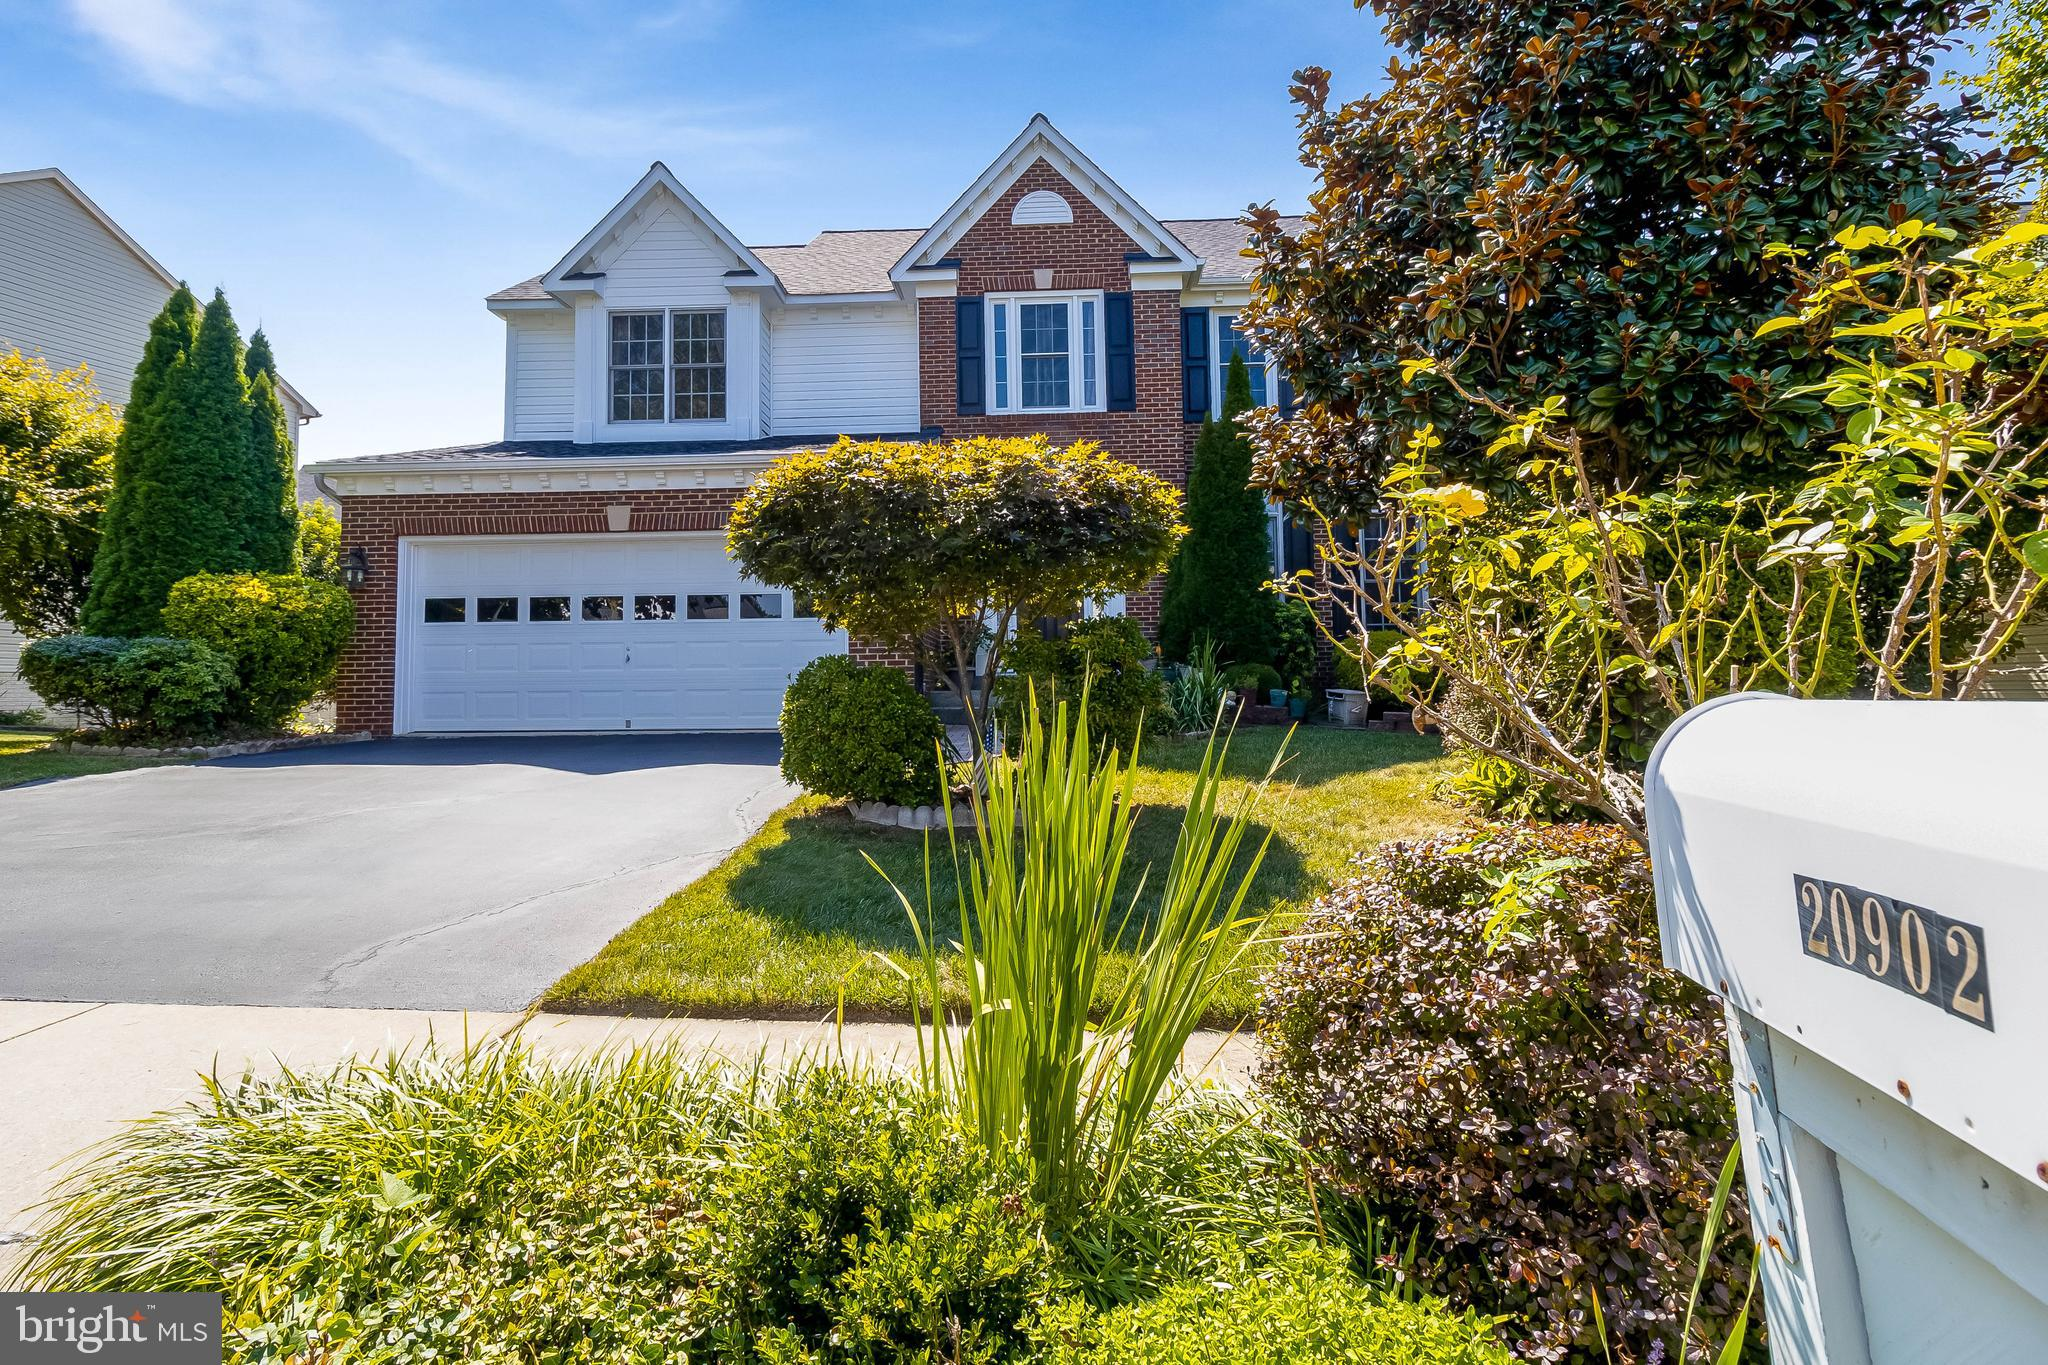 20902 TALL FOREST DRIVE, GERMANTOWN, MD 20876